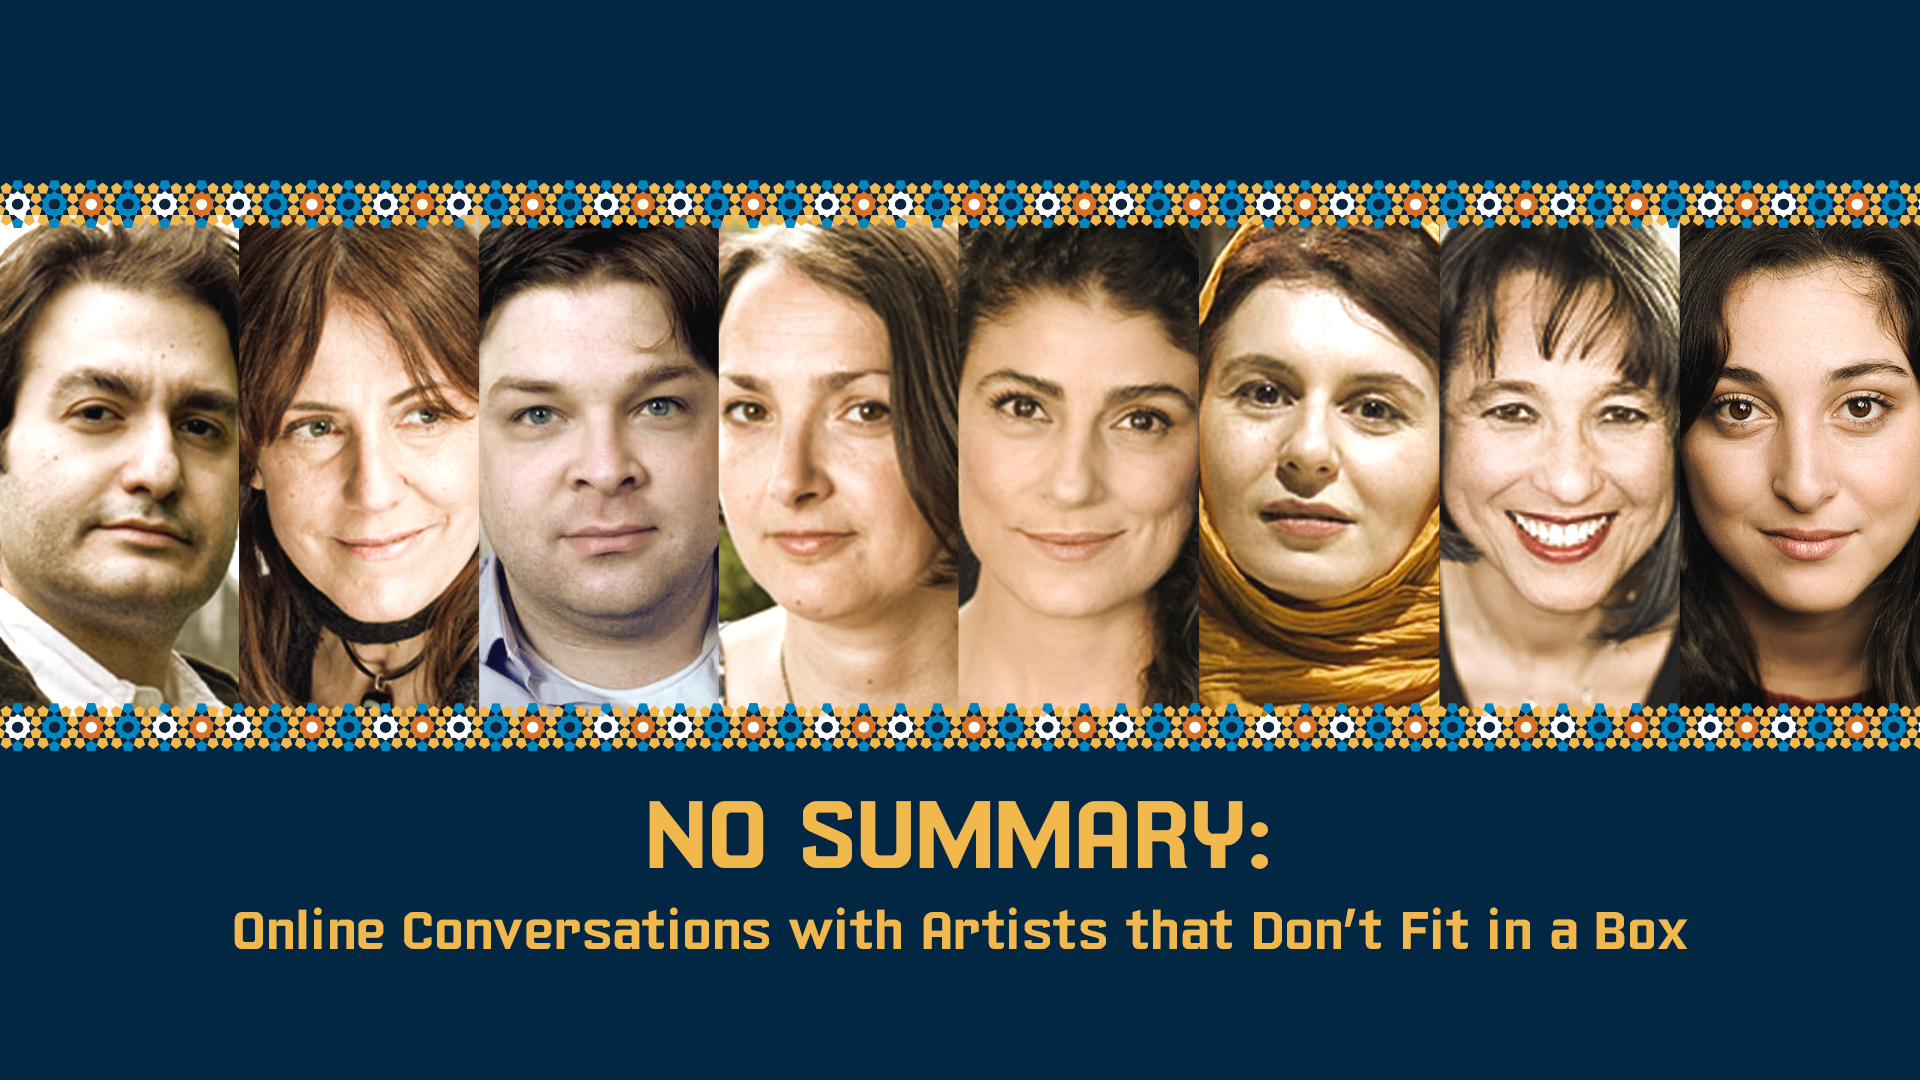 No Summary: Conversations with Artists that Don't Fit in a Box!